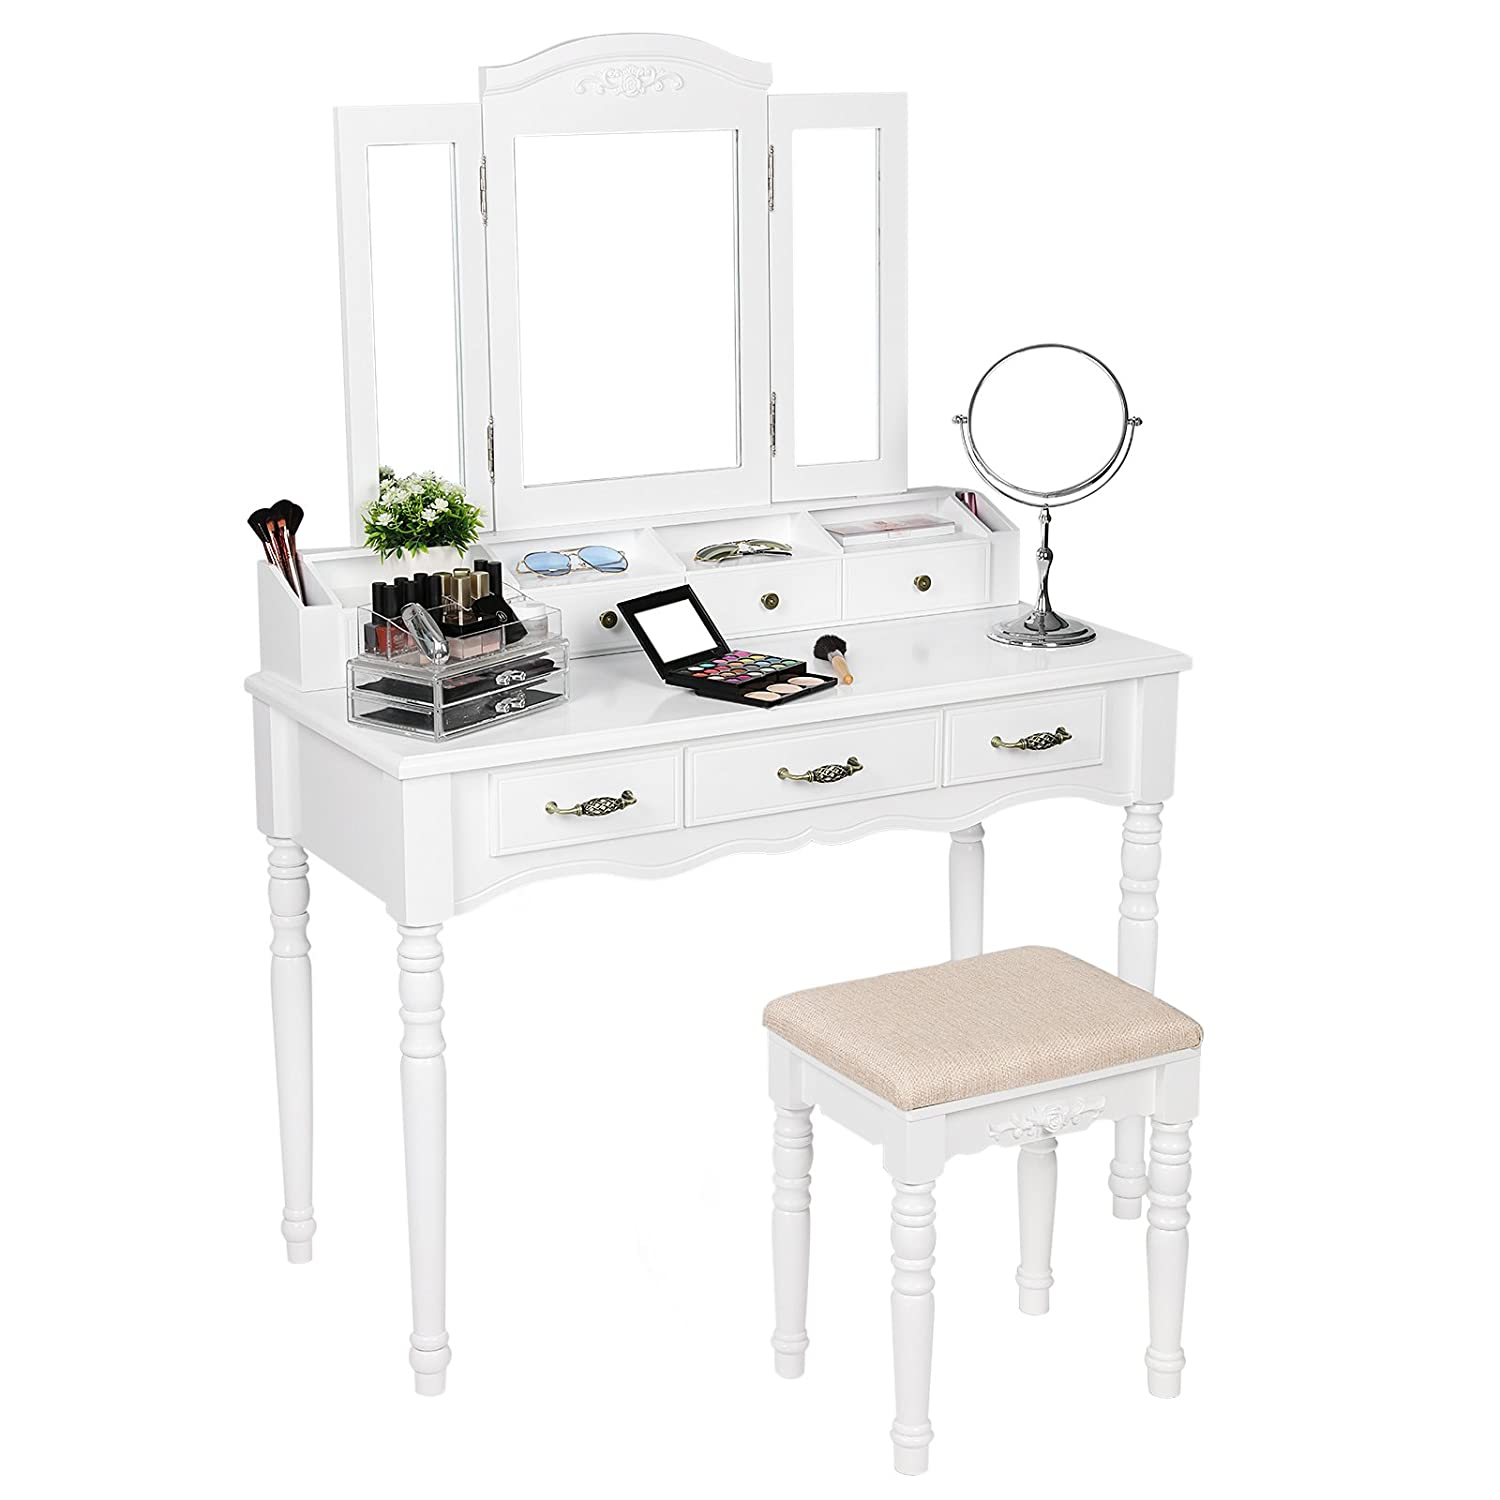 SONGMICS 7 Drawers Vanity Table Set with Tri folding Mirror 6 Organizers  Makeup Dressing Table. Vanities   Vanity Benches   Amazon com